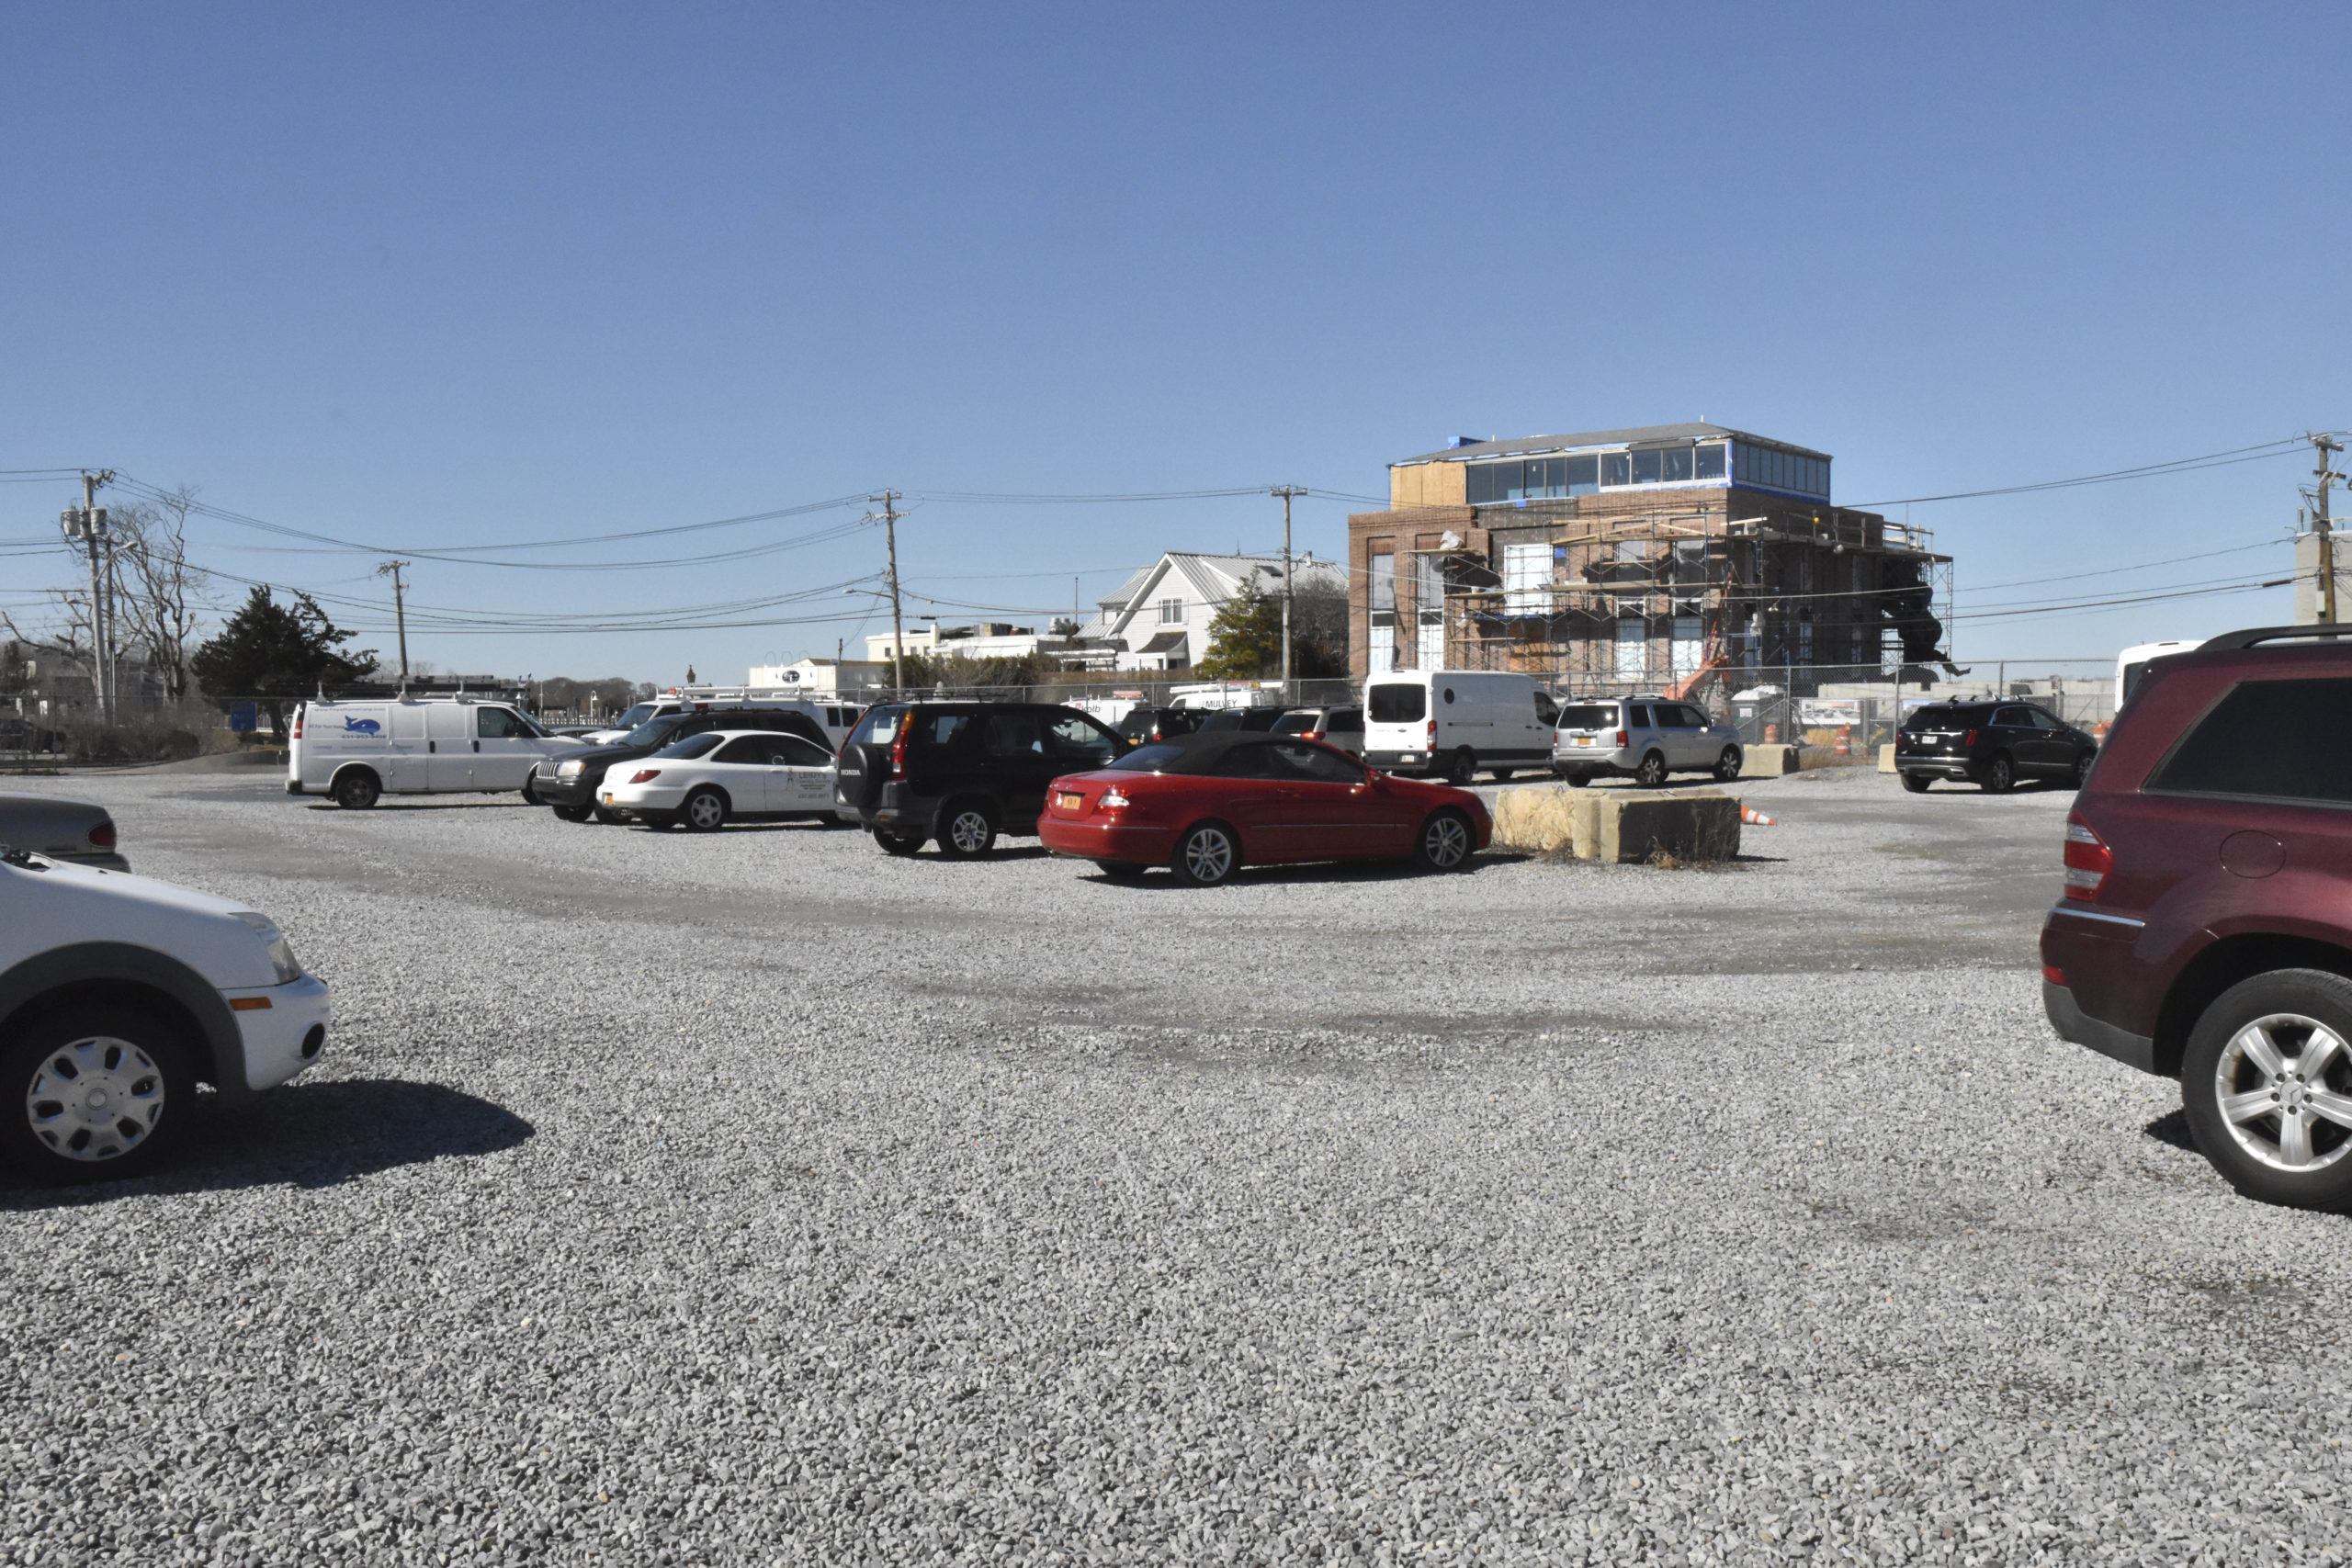 Sag Harbor Village's bid to obtain a long-term lease on what is commonly called the gas ball parking lot at the corner of Long Island Avenue and Bridge Streets has been rejected by National Grid in favor of a higher offer from Friends of Bay Street.    STEPHEN J. KOTZ